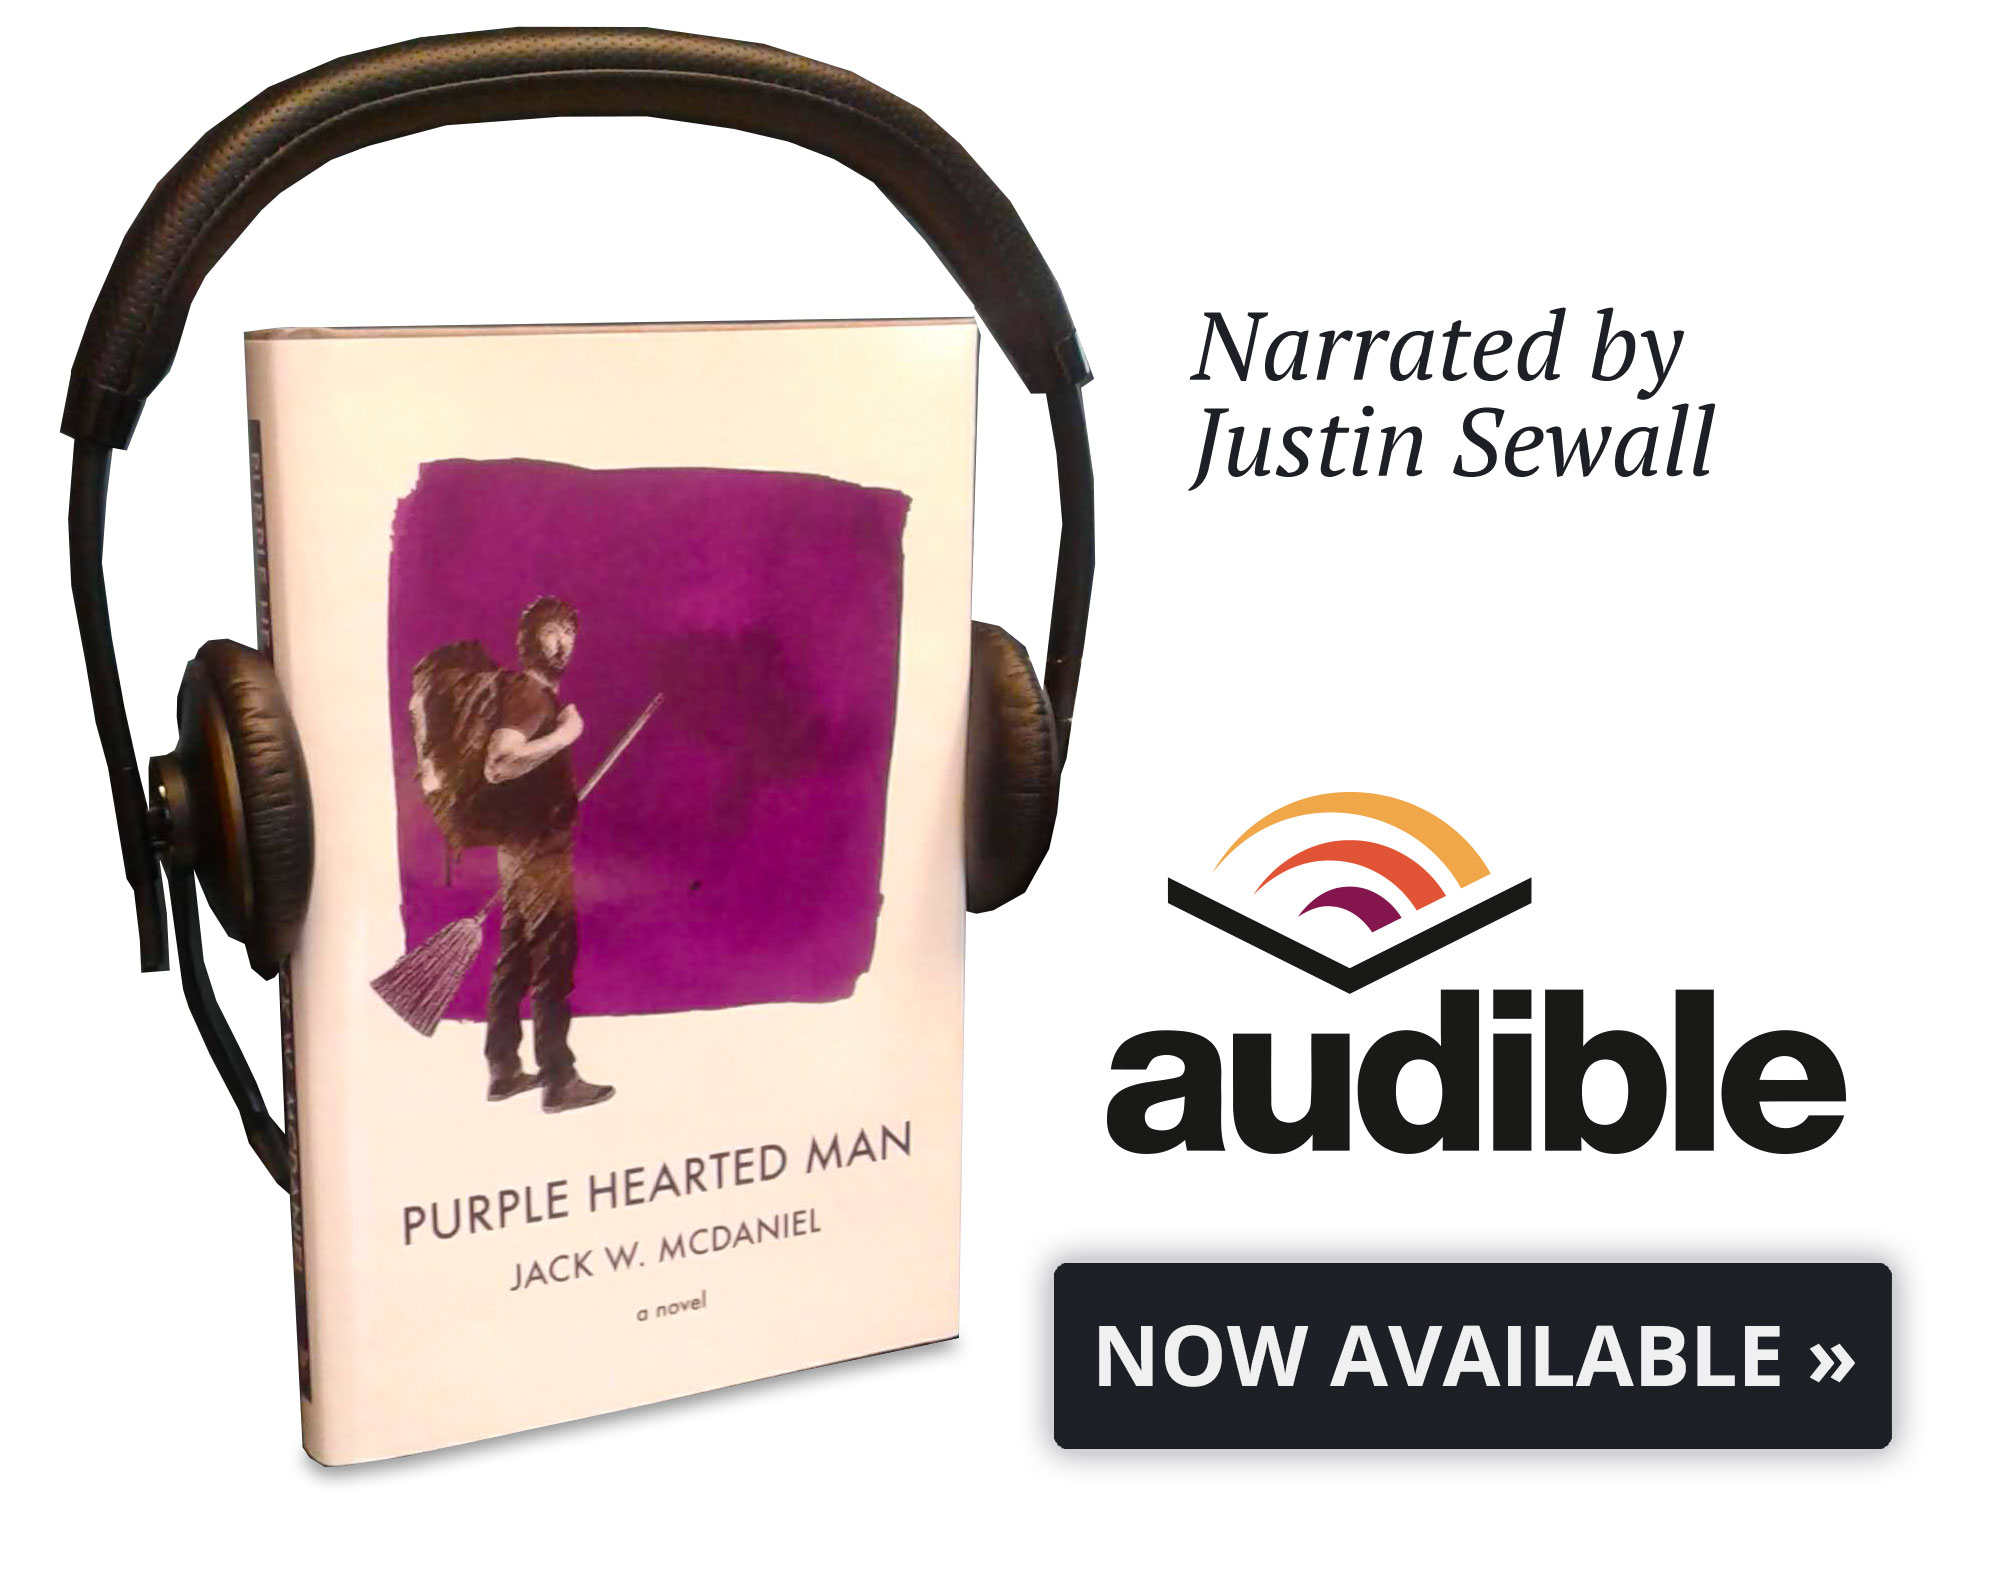 Audible version of Purple Hearted Man